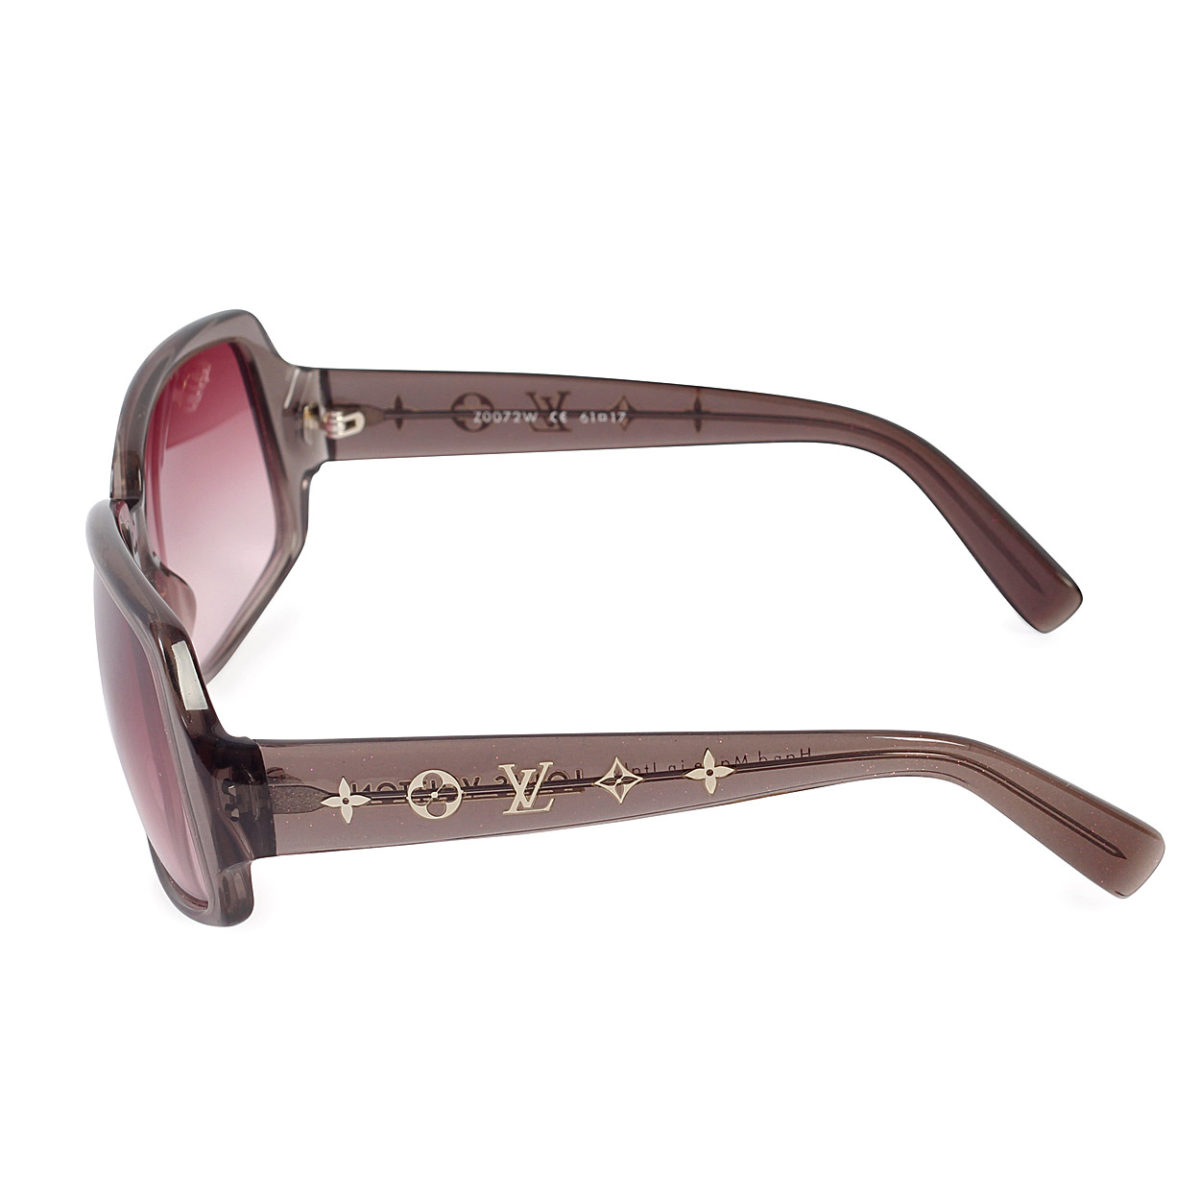 747c91dd133 LOUIS VUITTON Obsession GM Sunglasses - NEW